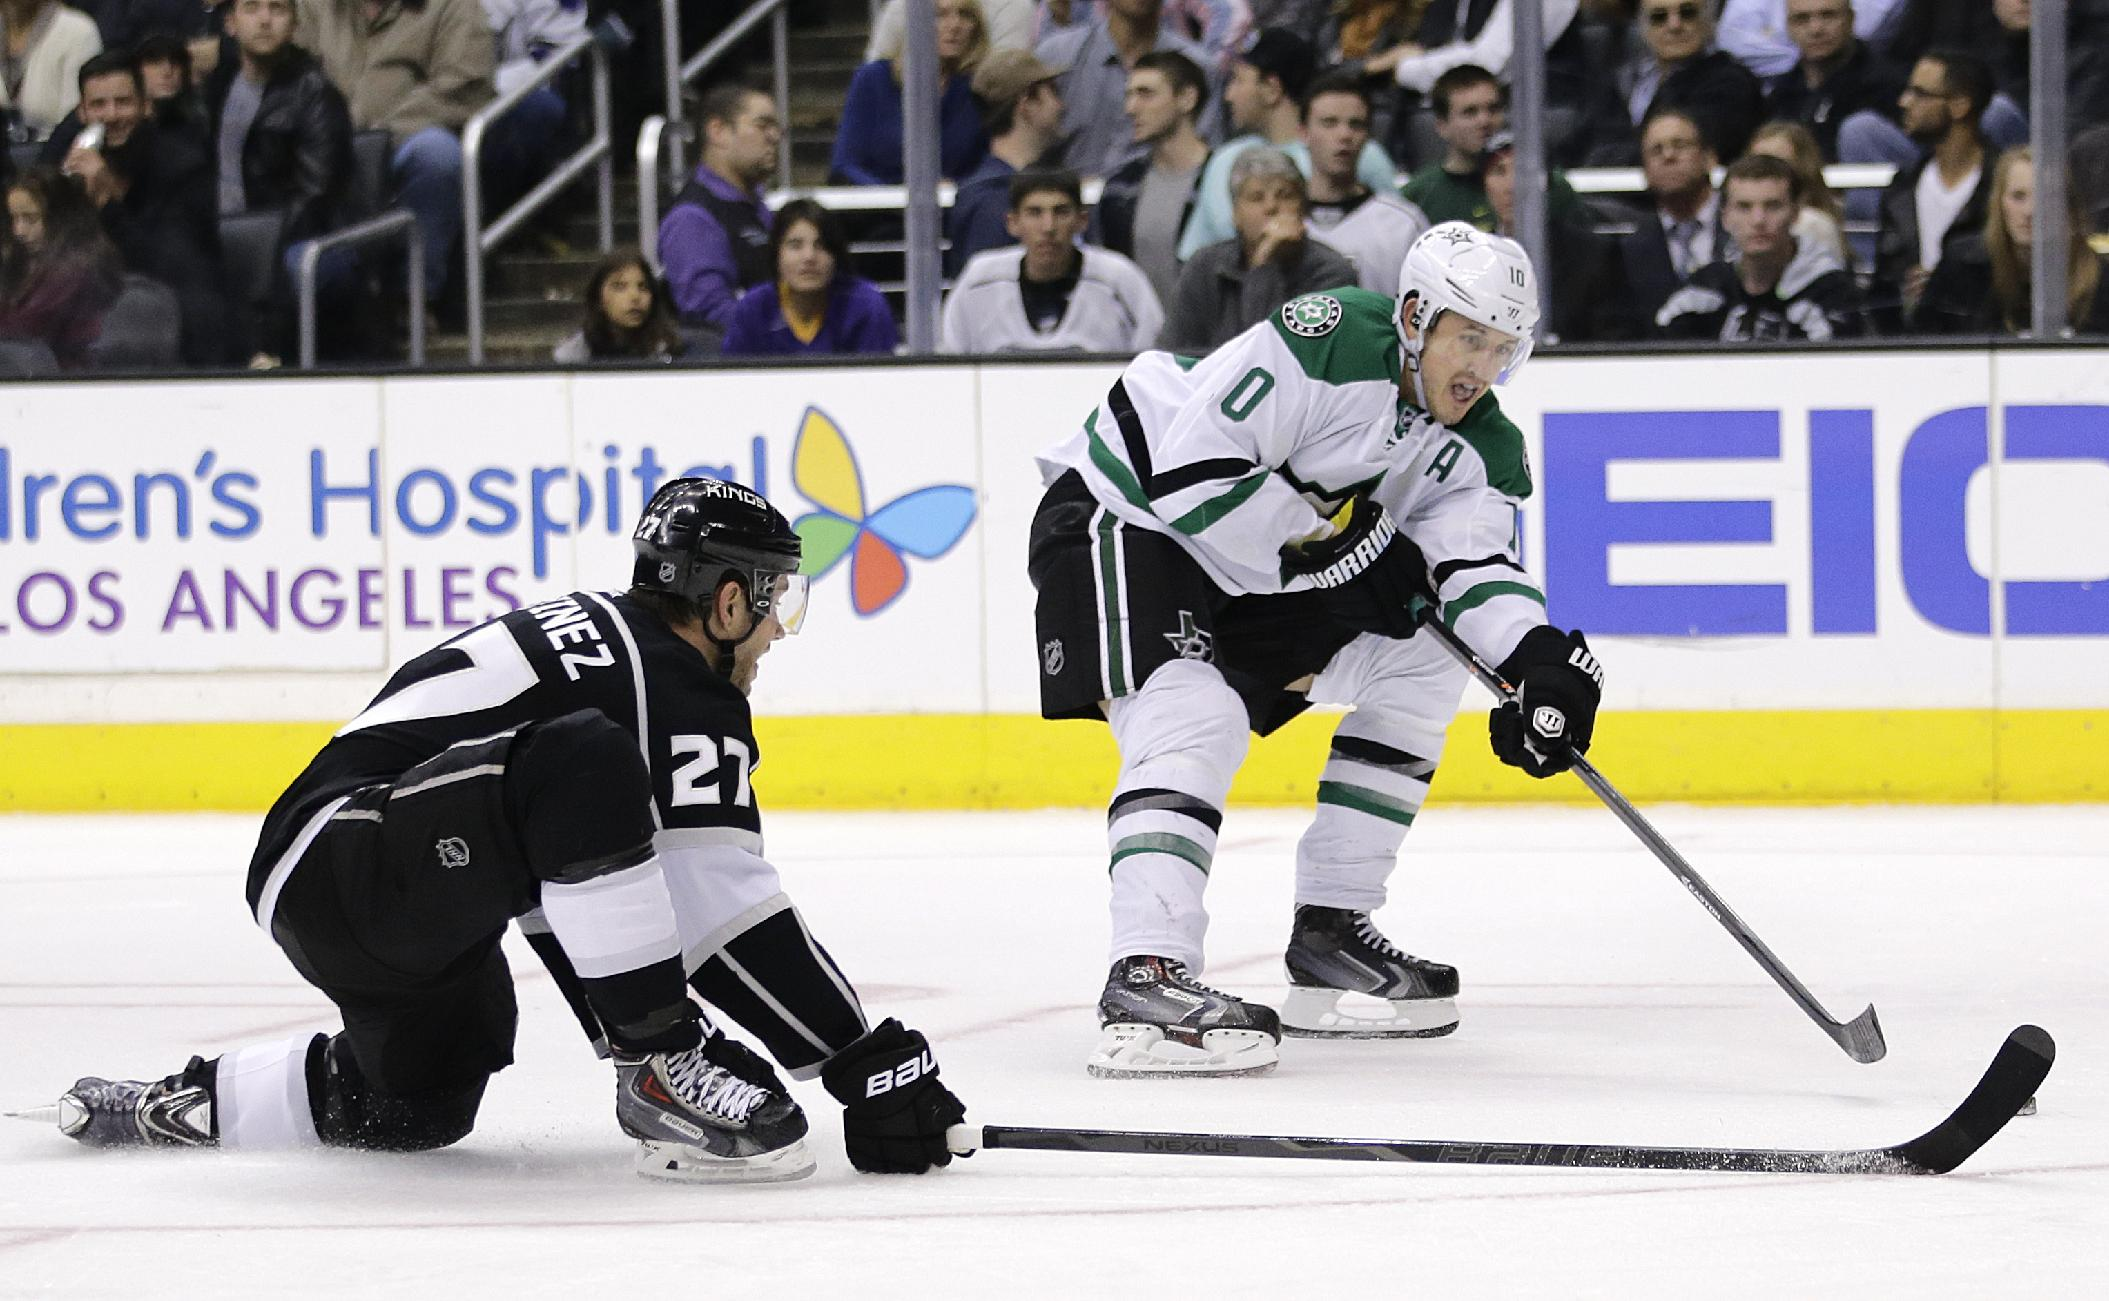 Dallas Stars' Shawn Horcoff, right, tries to score against Los Angeles Kings' Alec Martinez during the third period of an NHL hockey game on Monday, Dec. 23, 2013, in Los Angeles. The Stars won 5-2